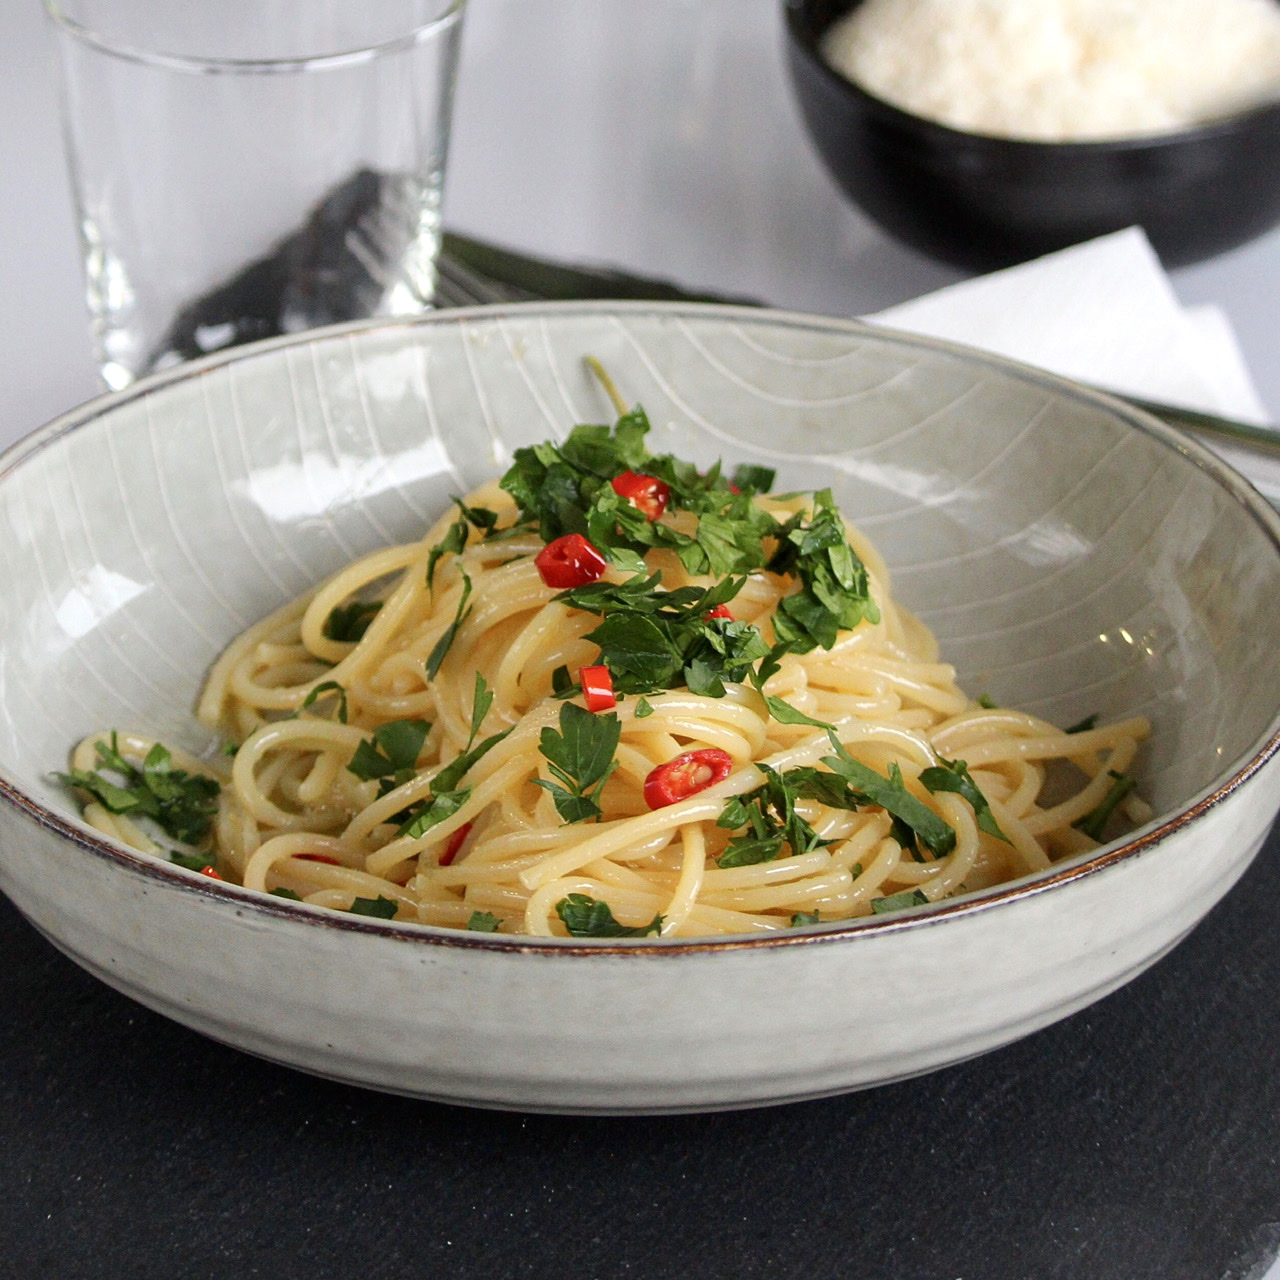 spaghetti with olive oil and red pepper flakes